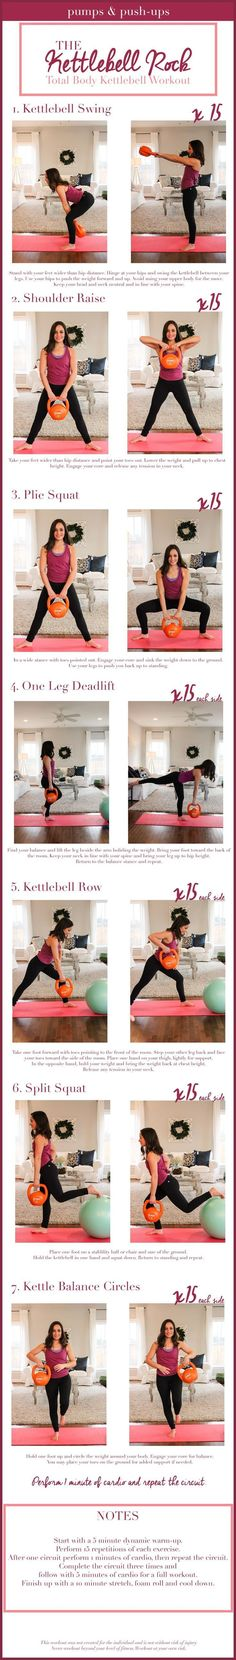 Fitness Articles Tips and Workouts: Kettlebell workout - at home workout using a stabi...